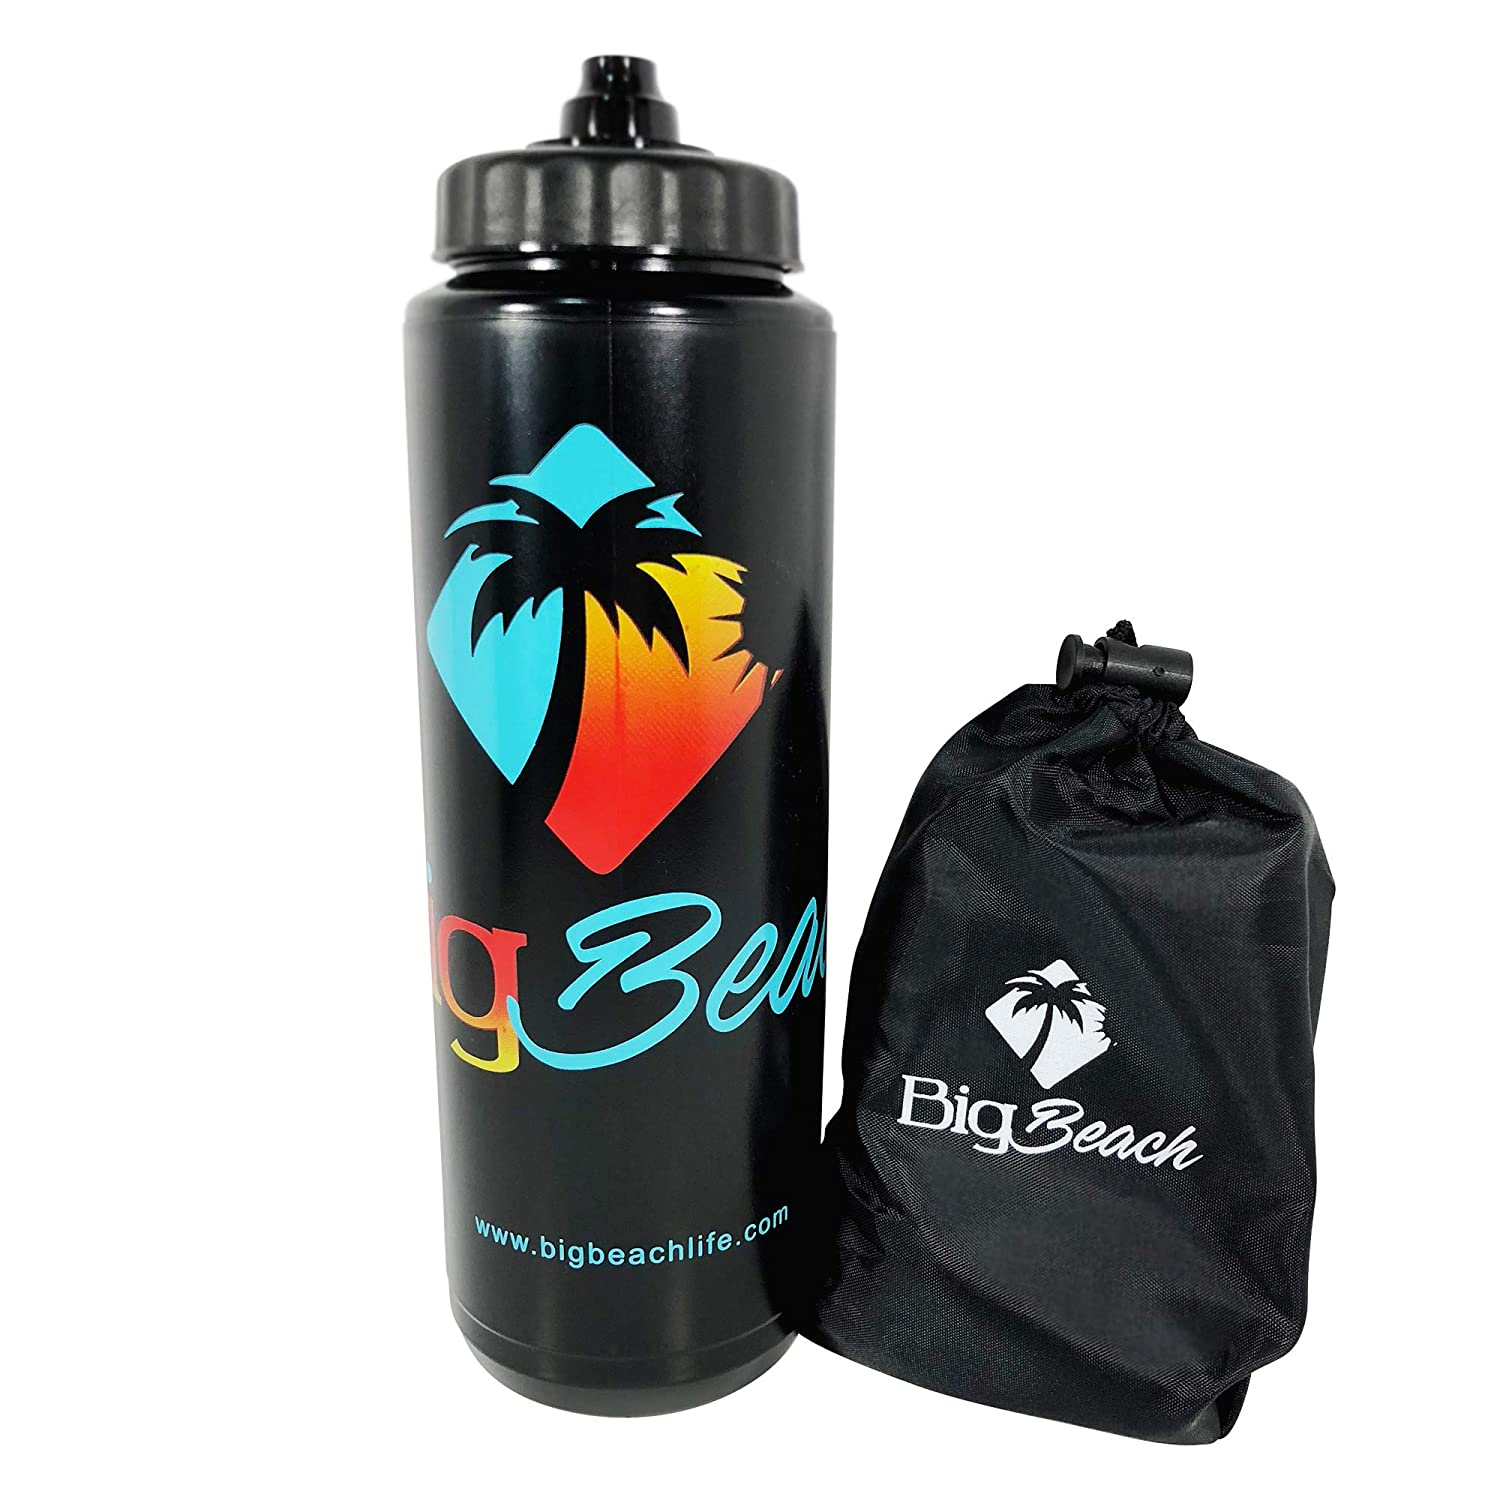 Big Beach Resistance Loop Exercise Bands with Carry Bag and Limited Edition Water Bottle